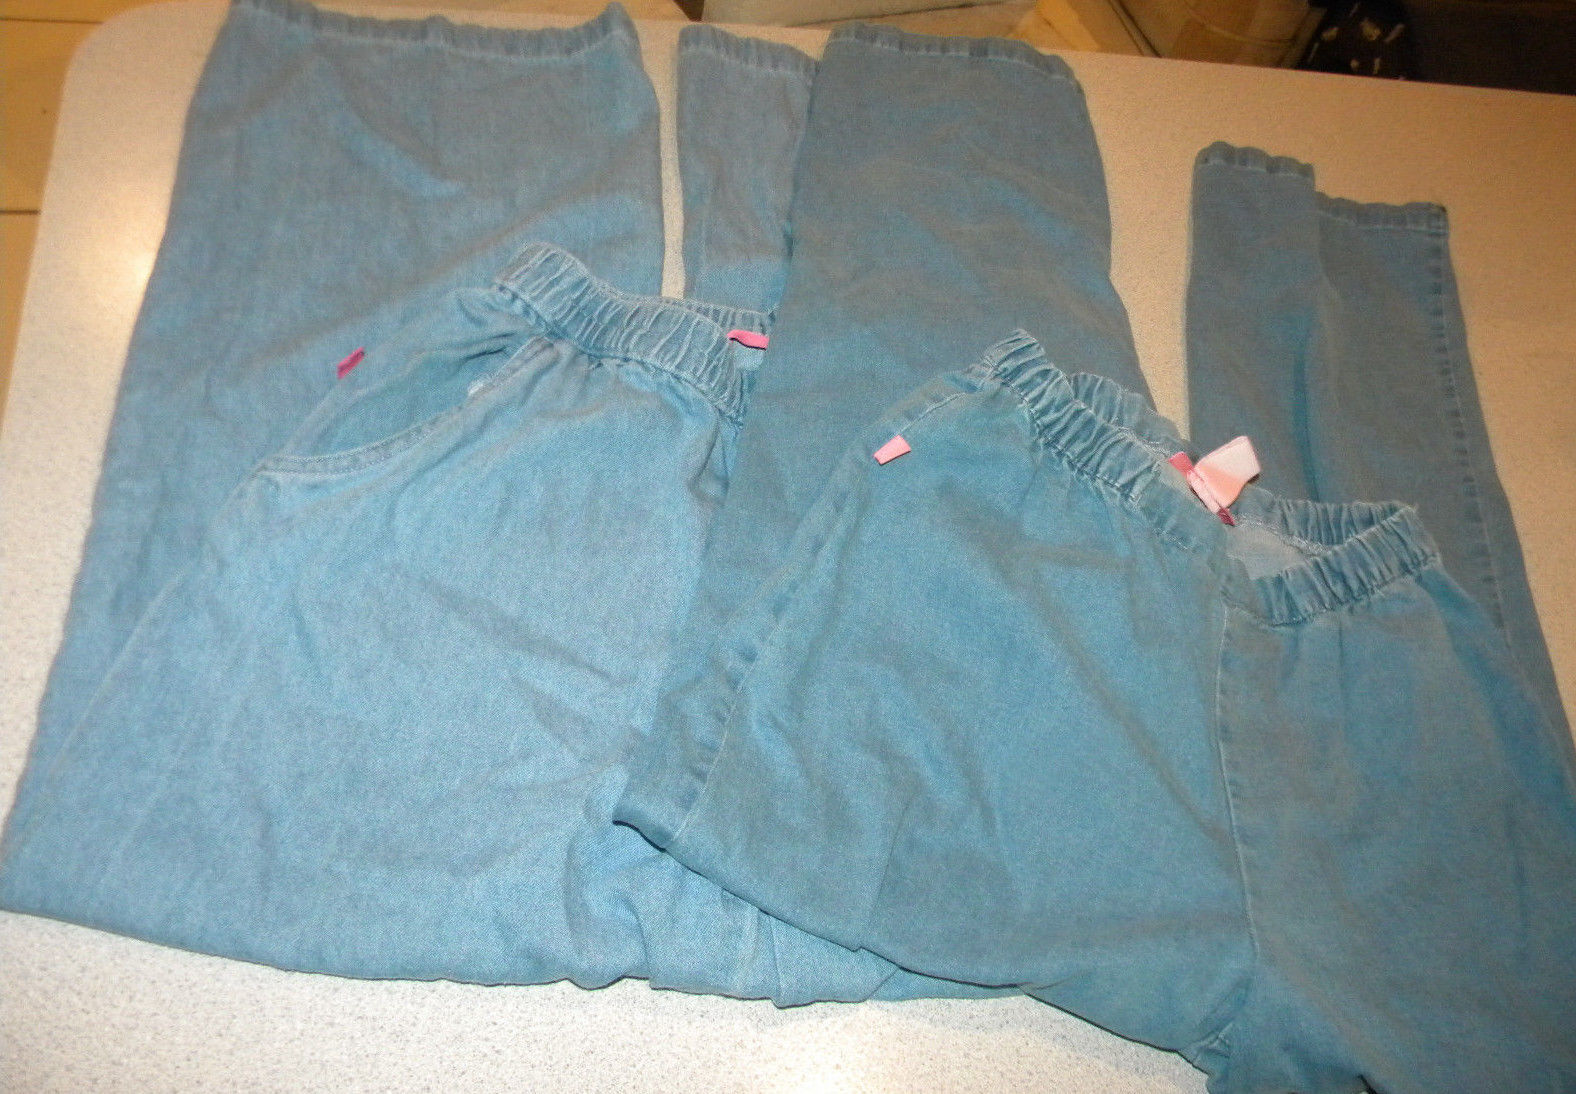 f469f6568b07a4 lot 2 Woman Within Elastic Waist Classic Fit Jeans Pants Plus Size 14W ins  29 - $25.99